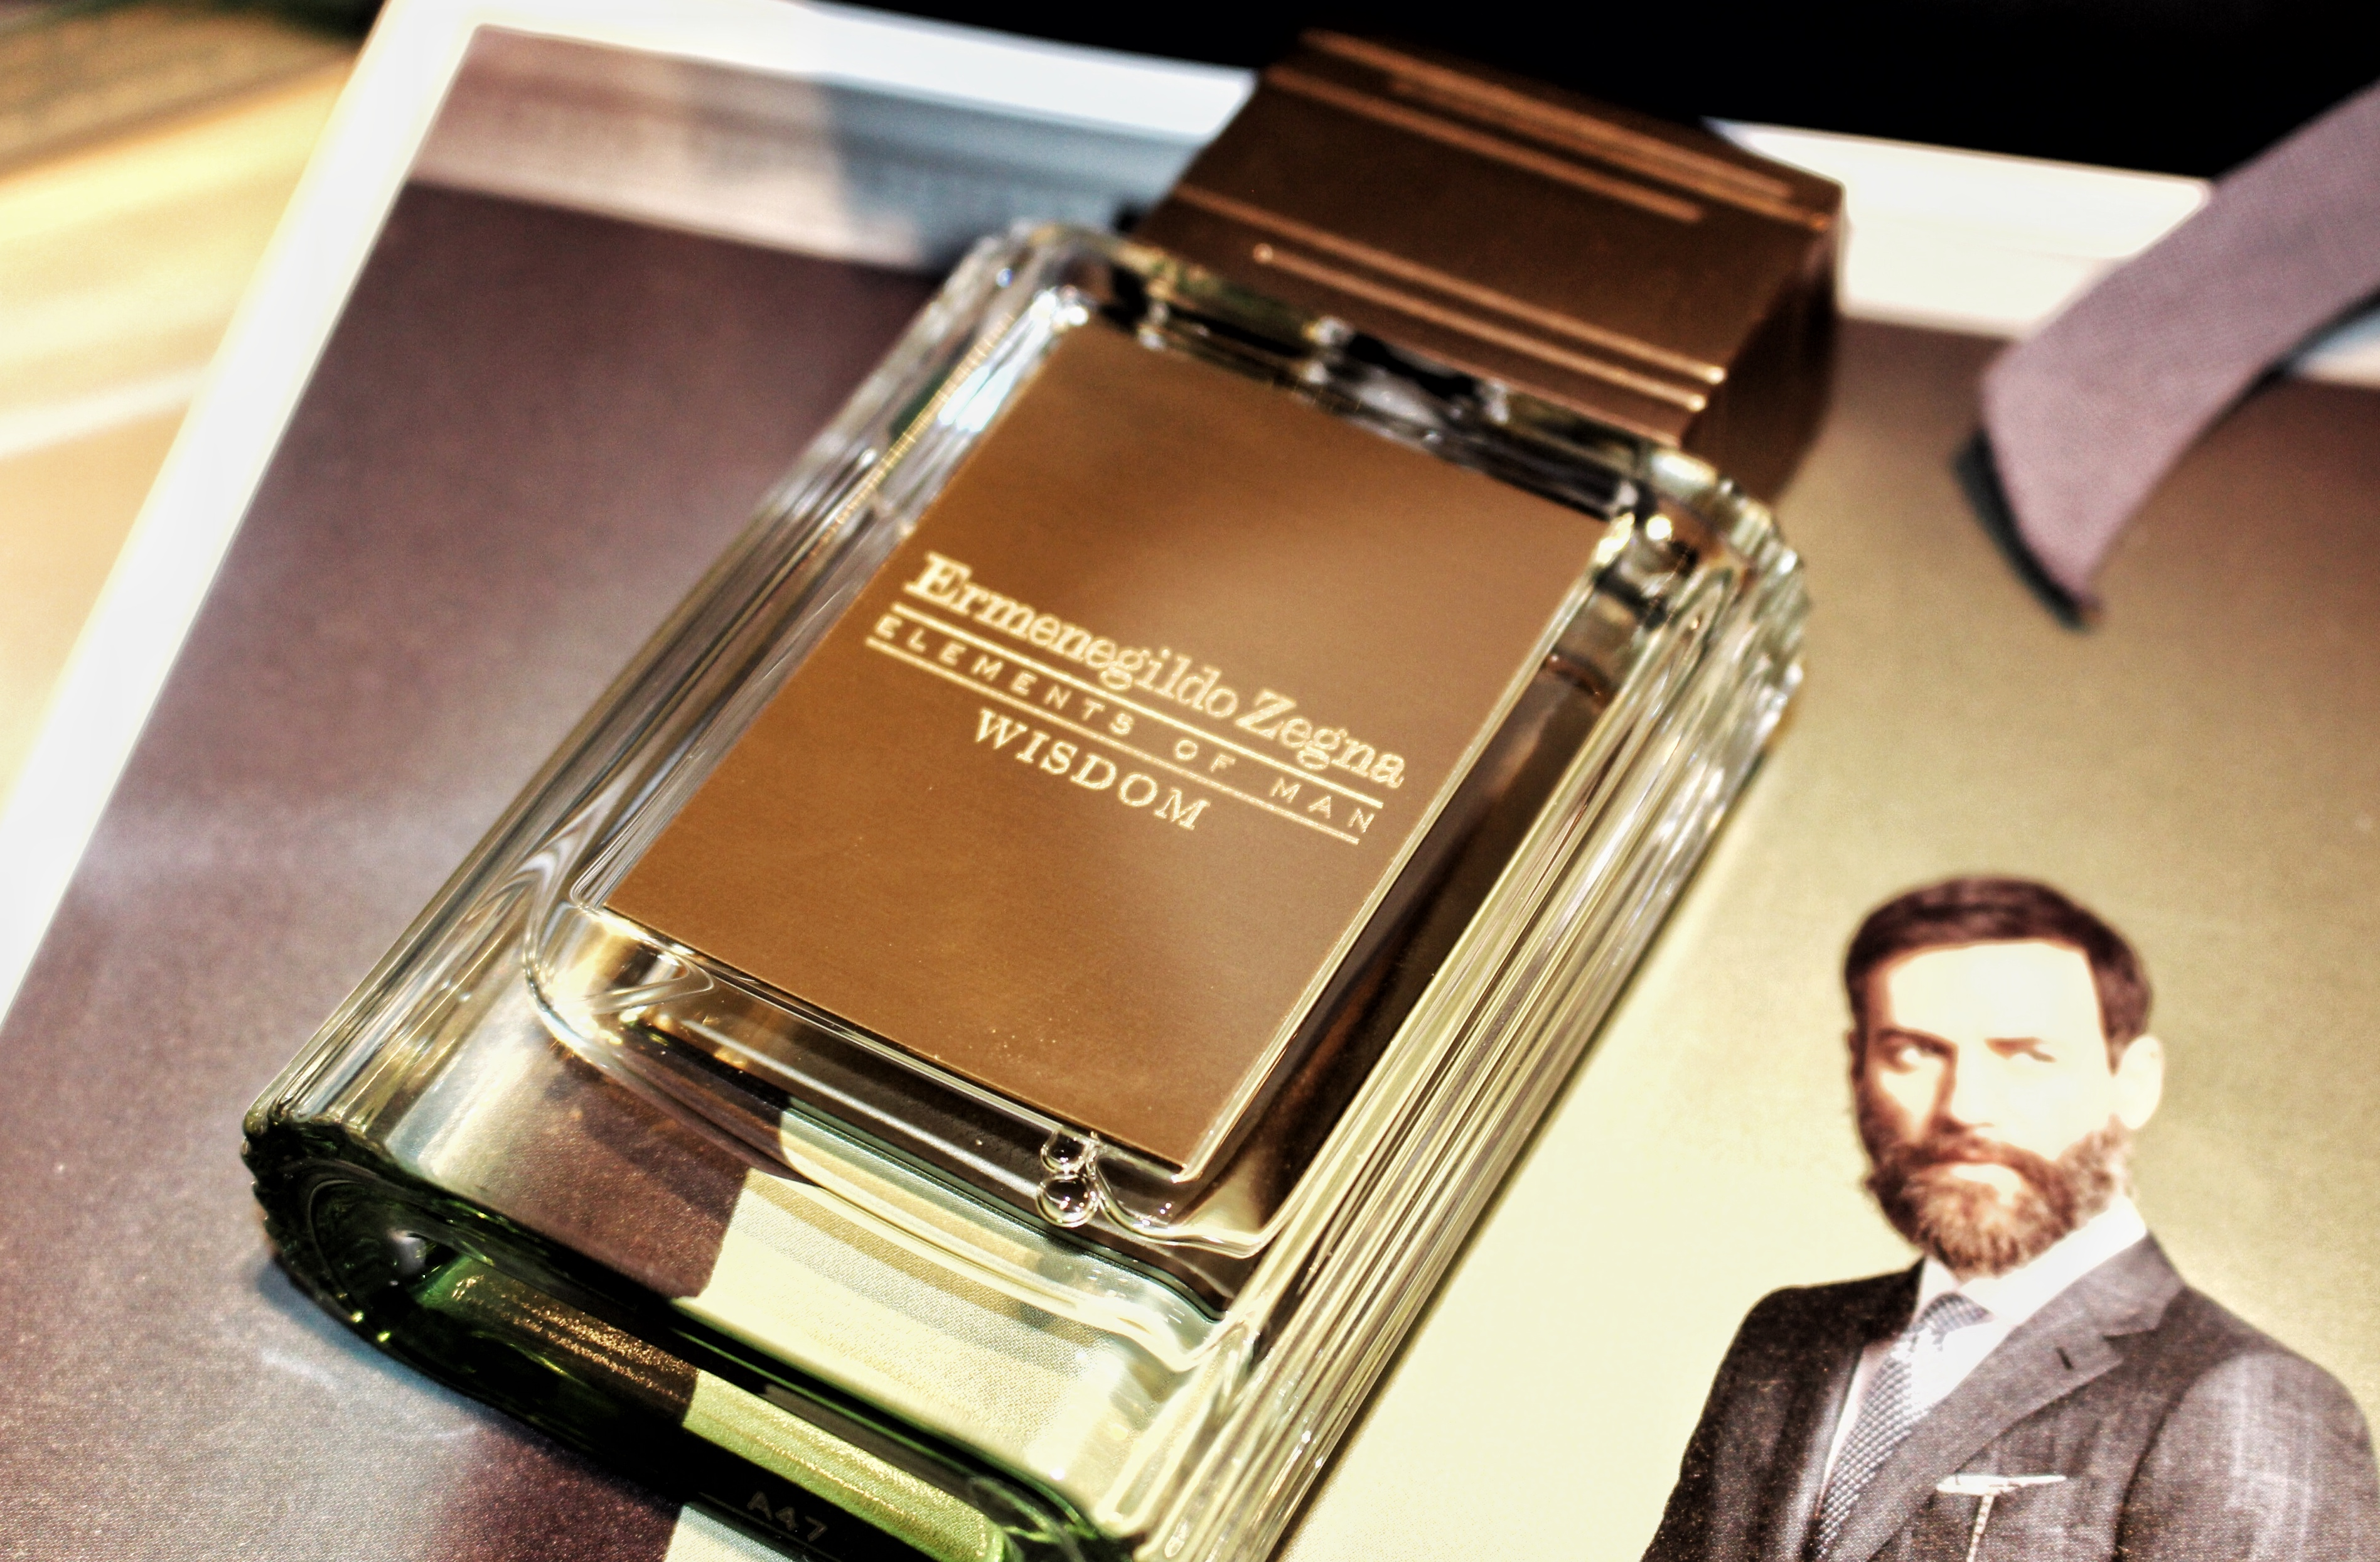 Zegna's Elements of Man: The Life Collection